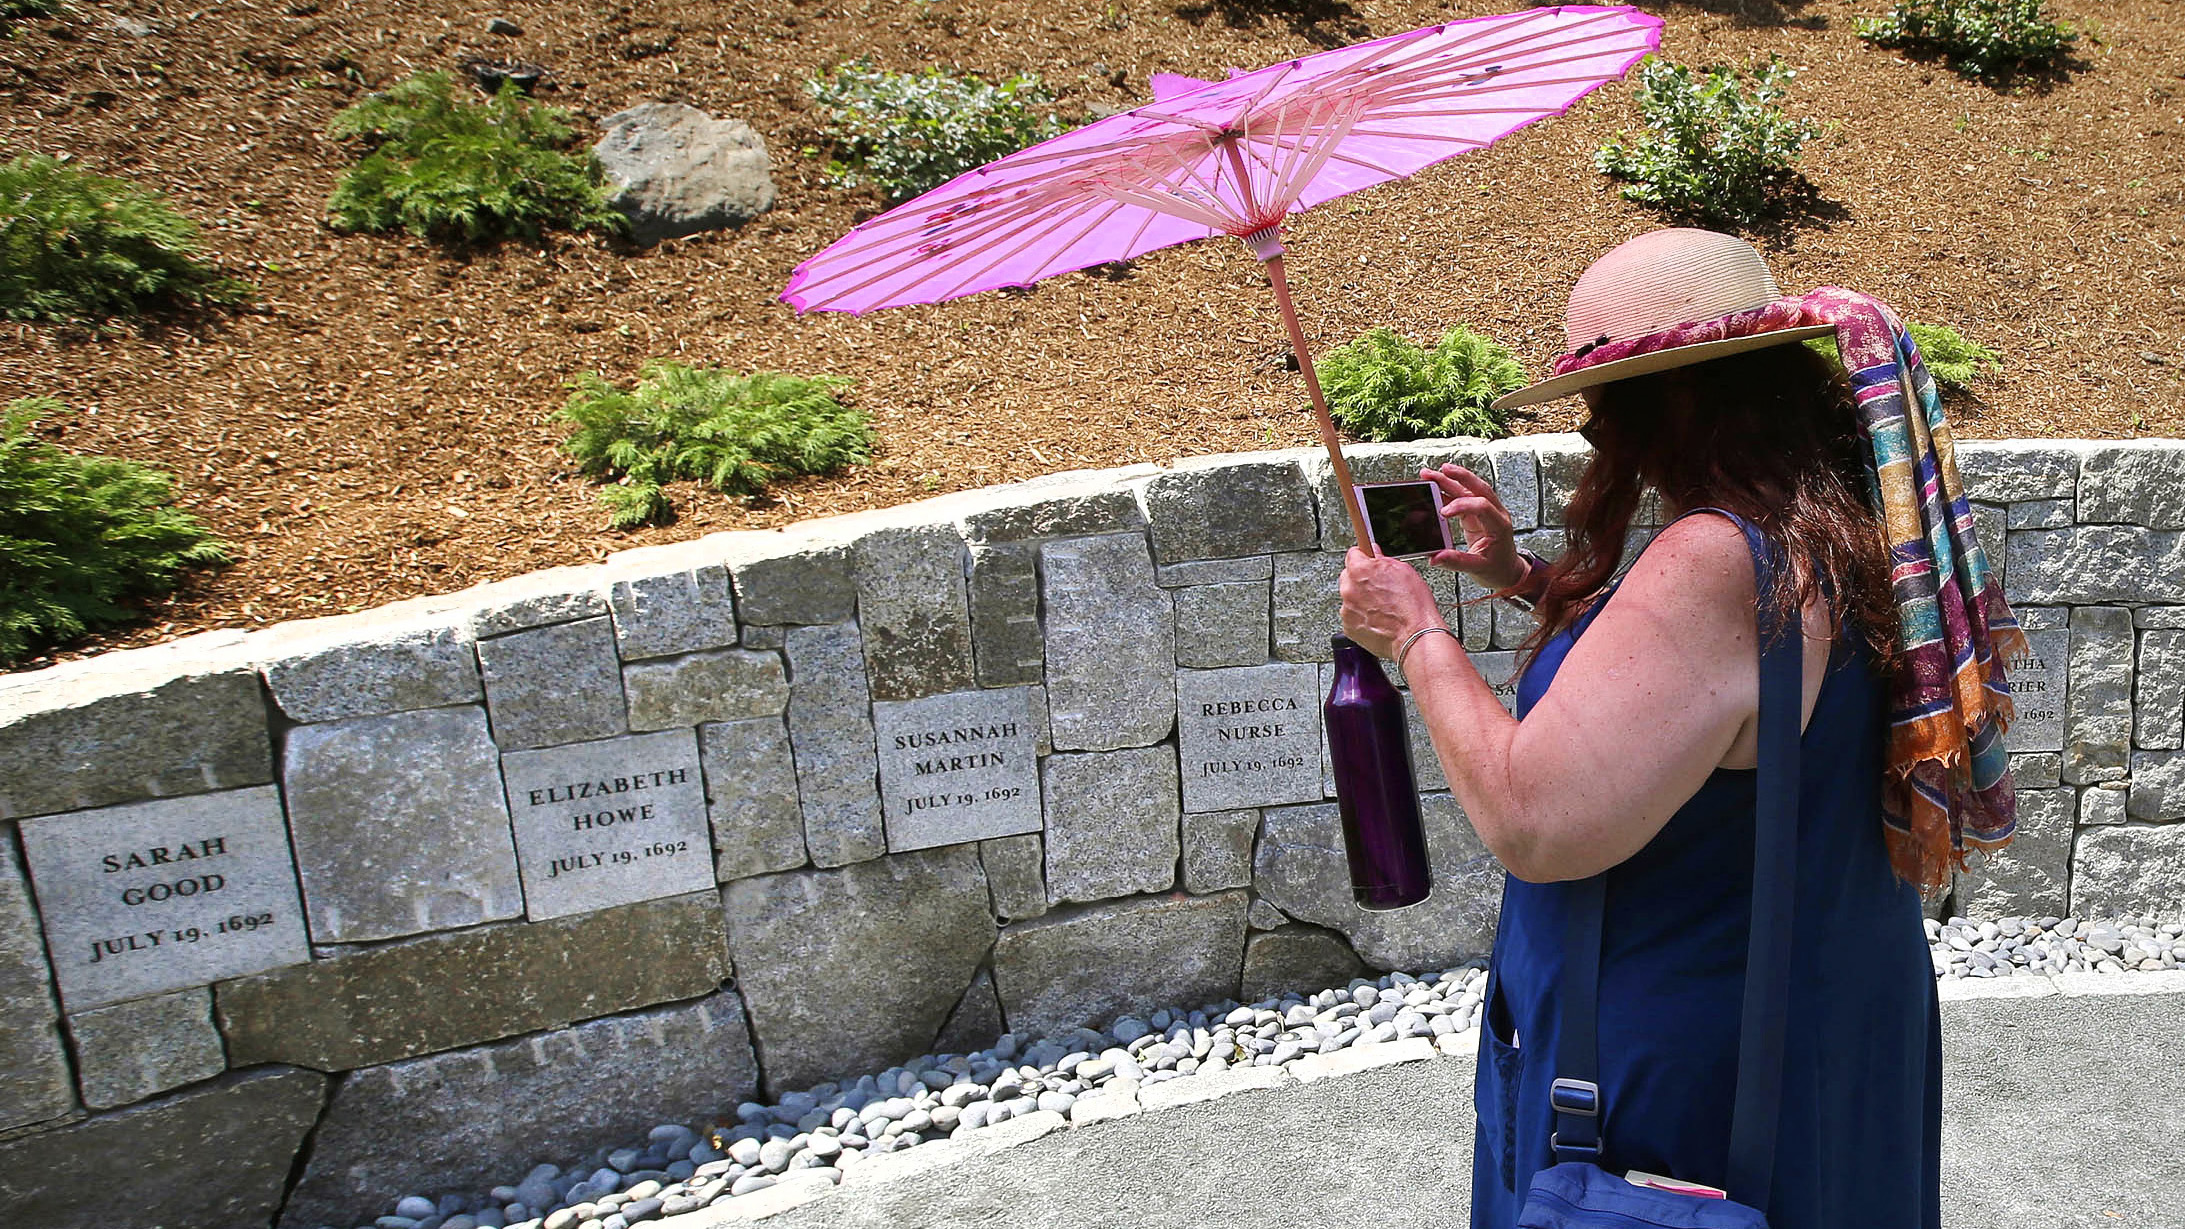 Karla Hailer, a fifth-grade teacher from Scituate, Mass., shoots a video where a memorial stands at the site in Salem, Mass., where five women were hanged as witches.